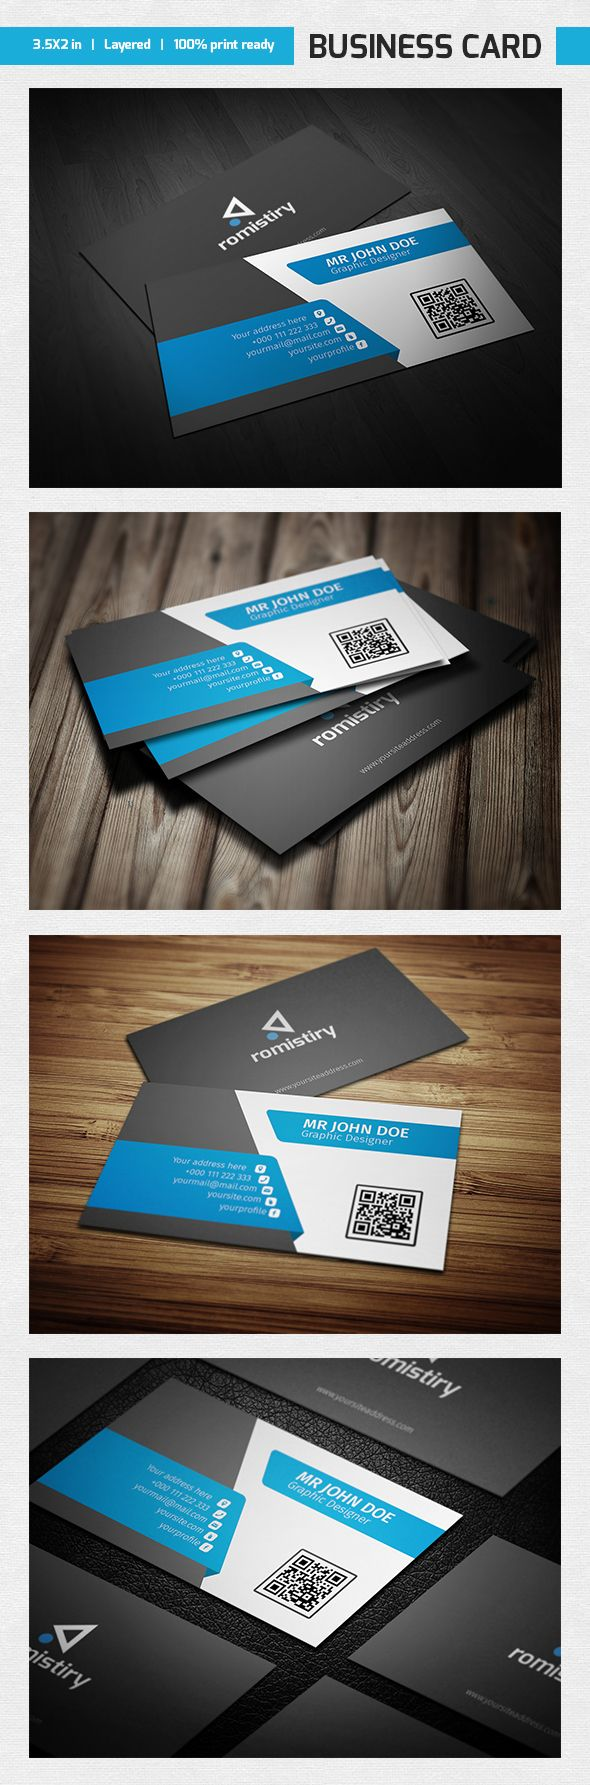 227 best Business Cards images on Pinterest | Carte de visite ...